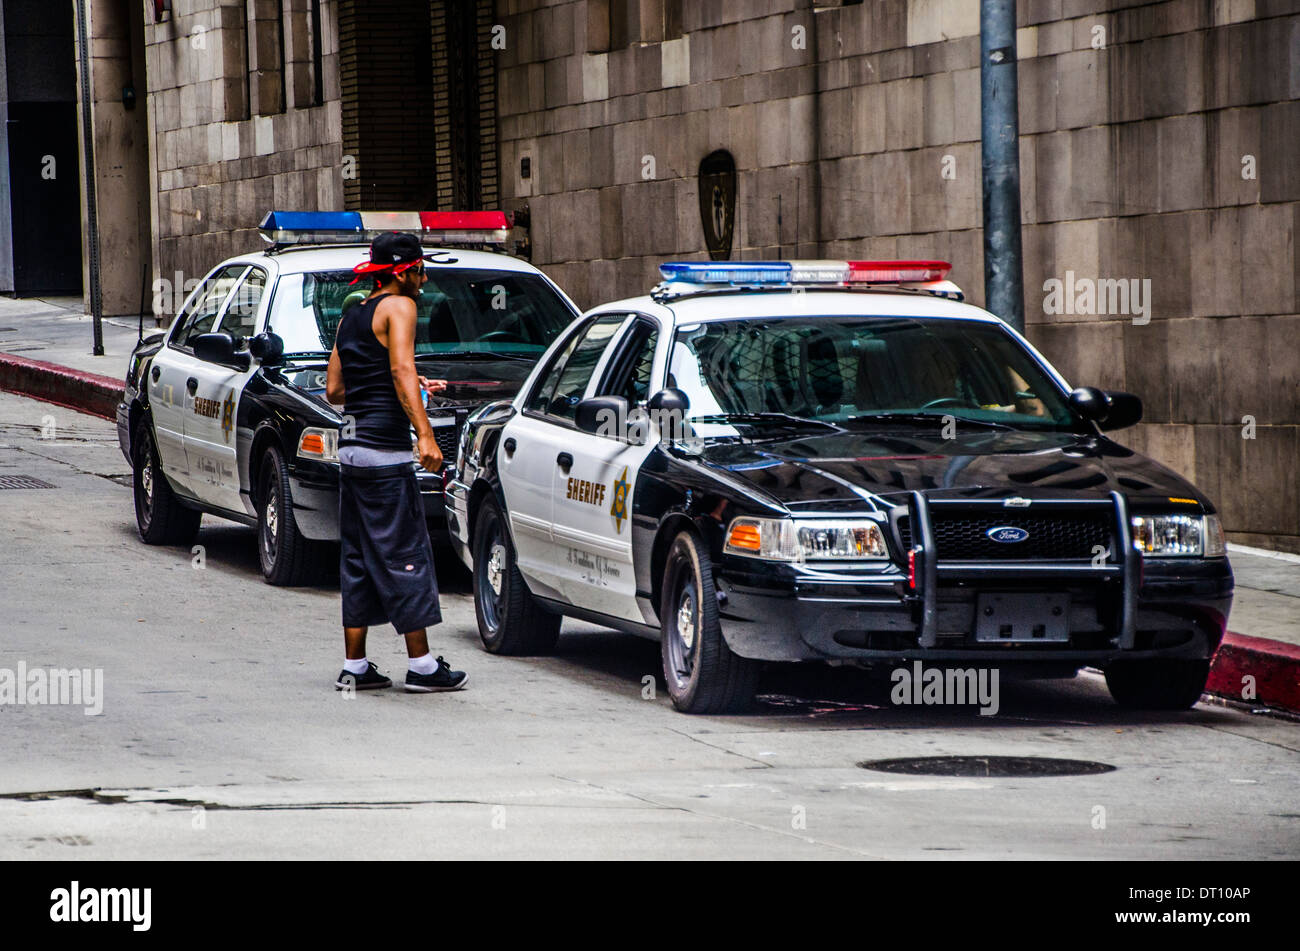 Lapd Detective Car | www.pixshark.com - Images Galleries ...